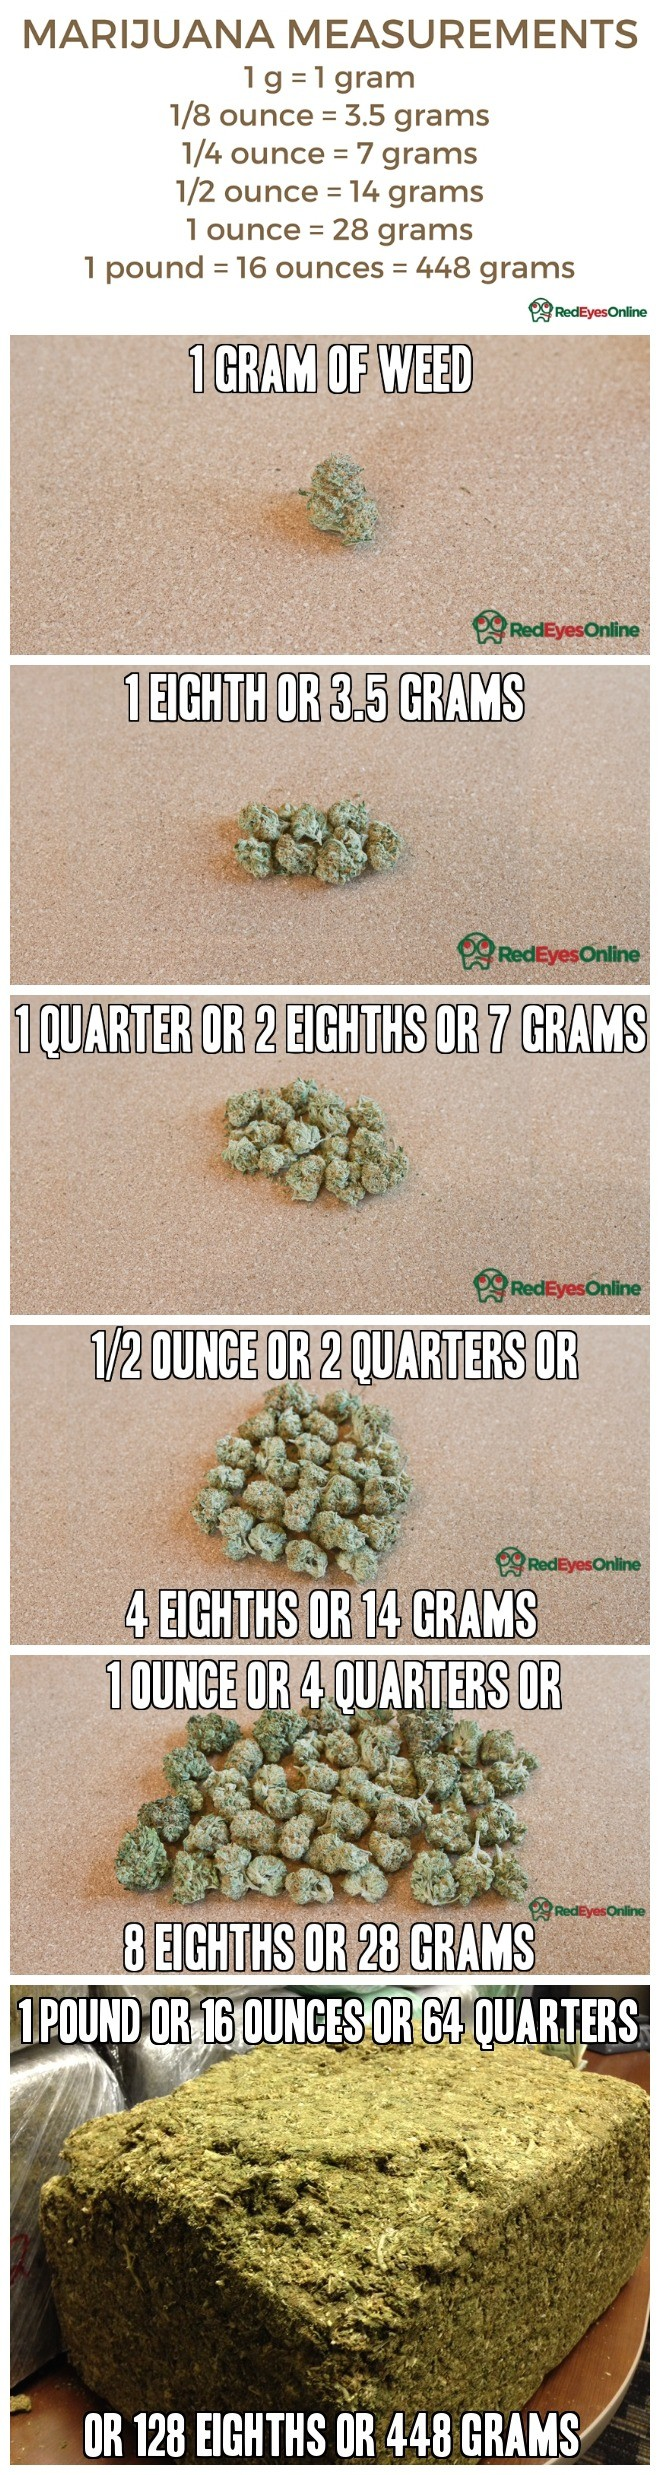 how much is a gram, quarter, half ounce and ounce of weed? - red